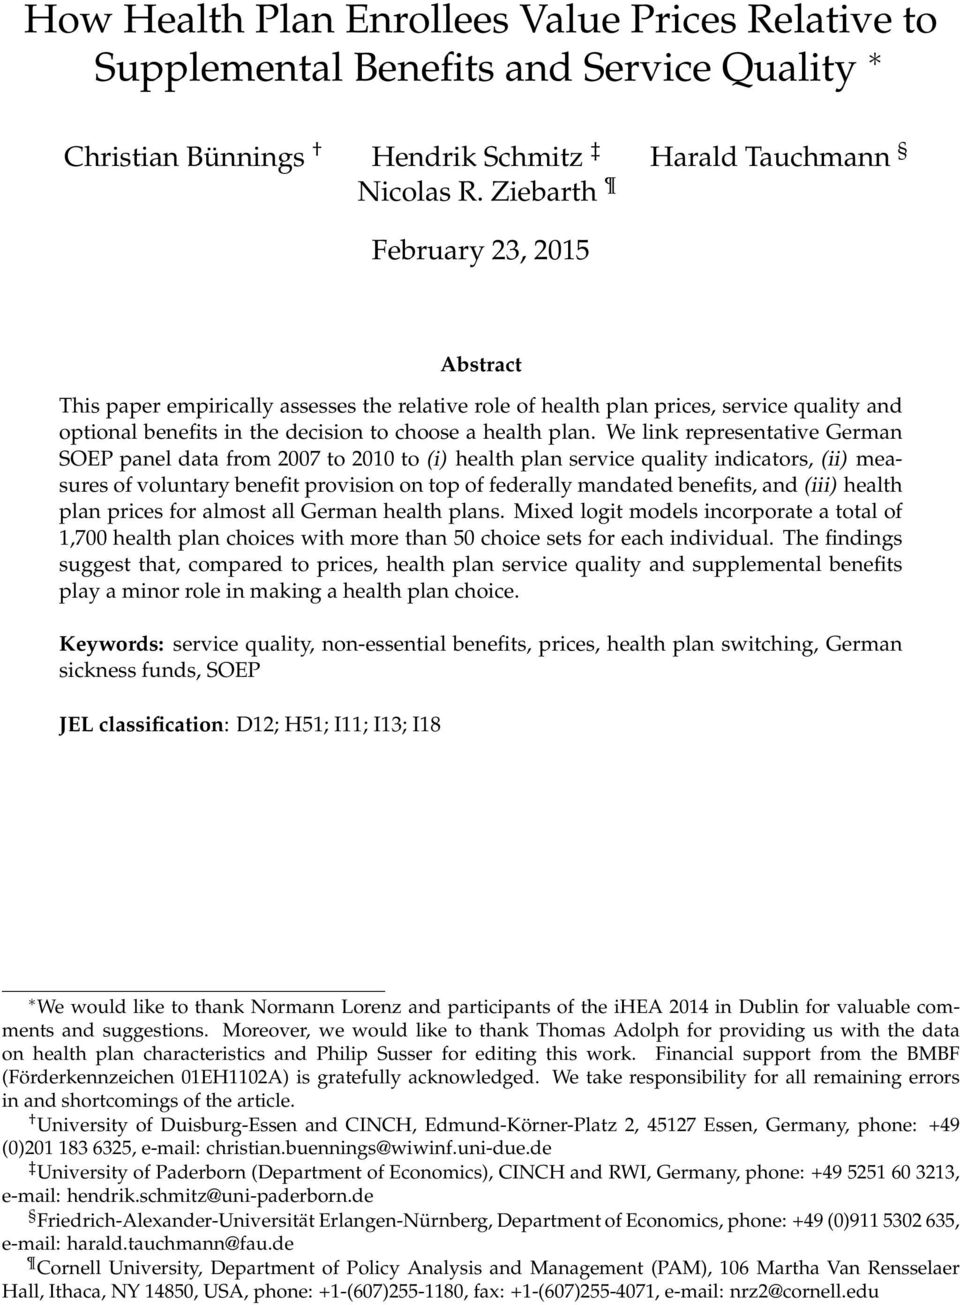 We link representative German SOEP panel data from 2007 to 2010 to (i) health plan service quality indicators, (ii) measures of voluntary benefit provision on top of federally mandated benefits, and